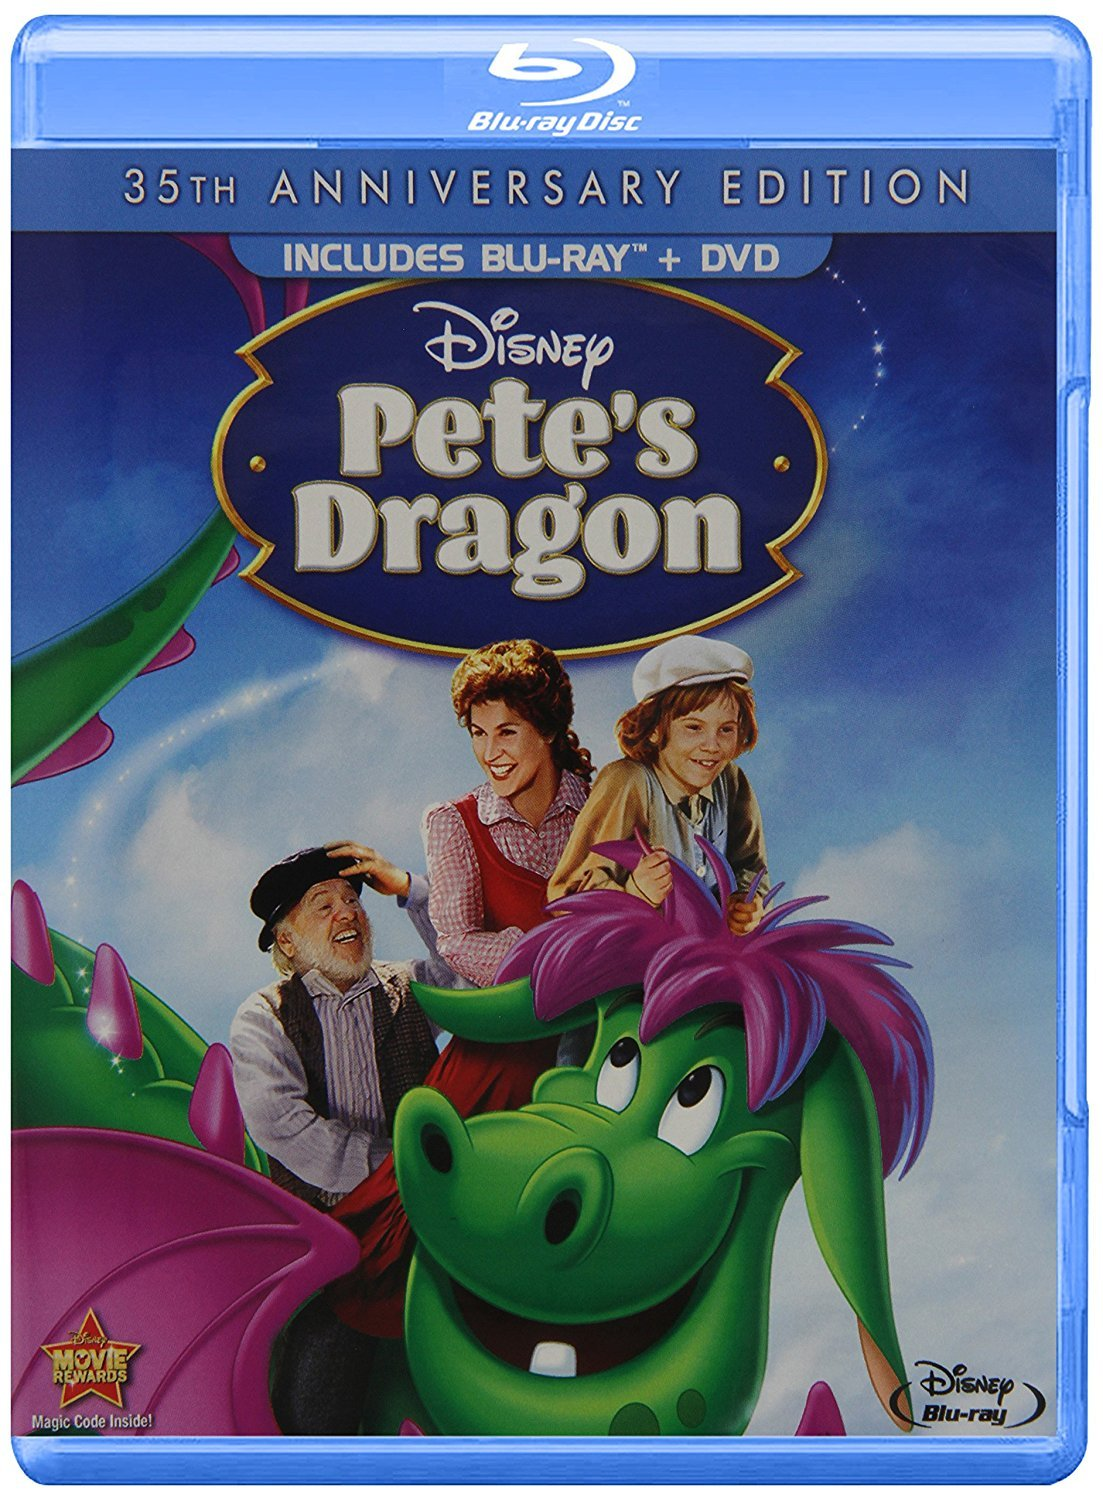 Disney Pete's Dragon (35th Anniversary Edition) [Blu-ray + DVD]